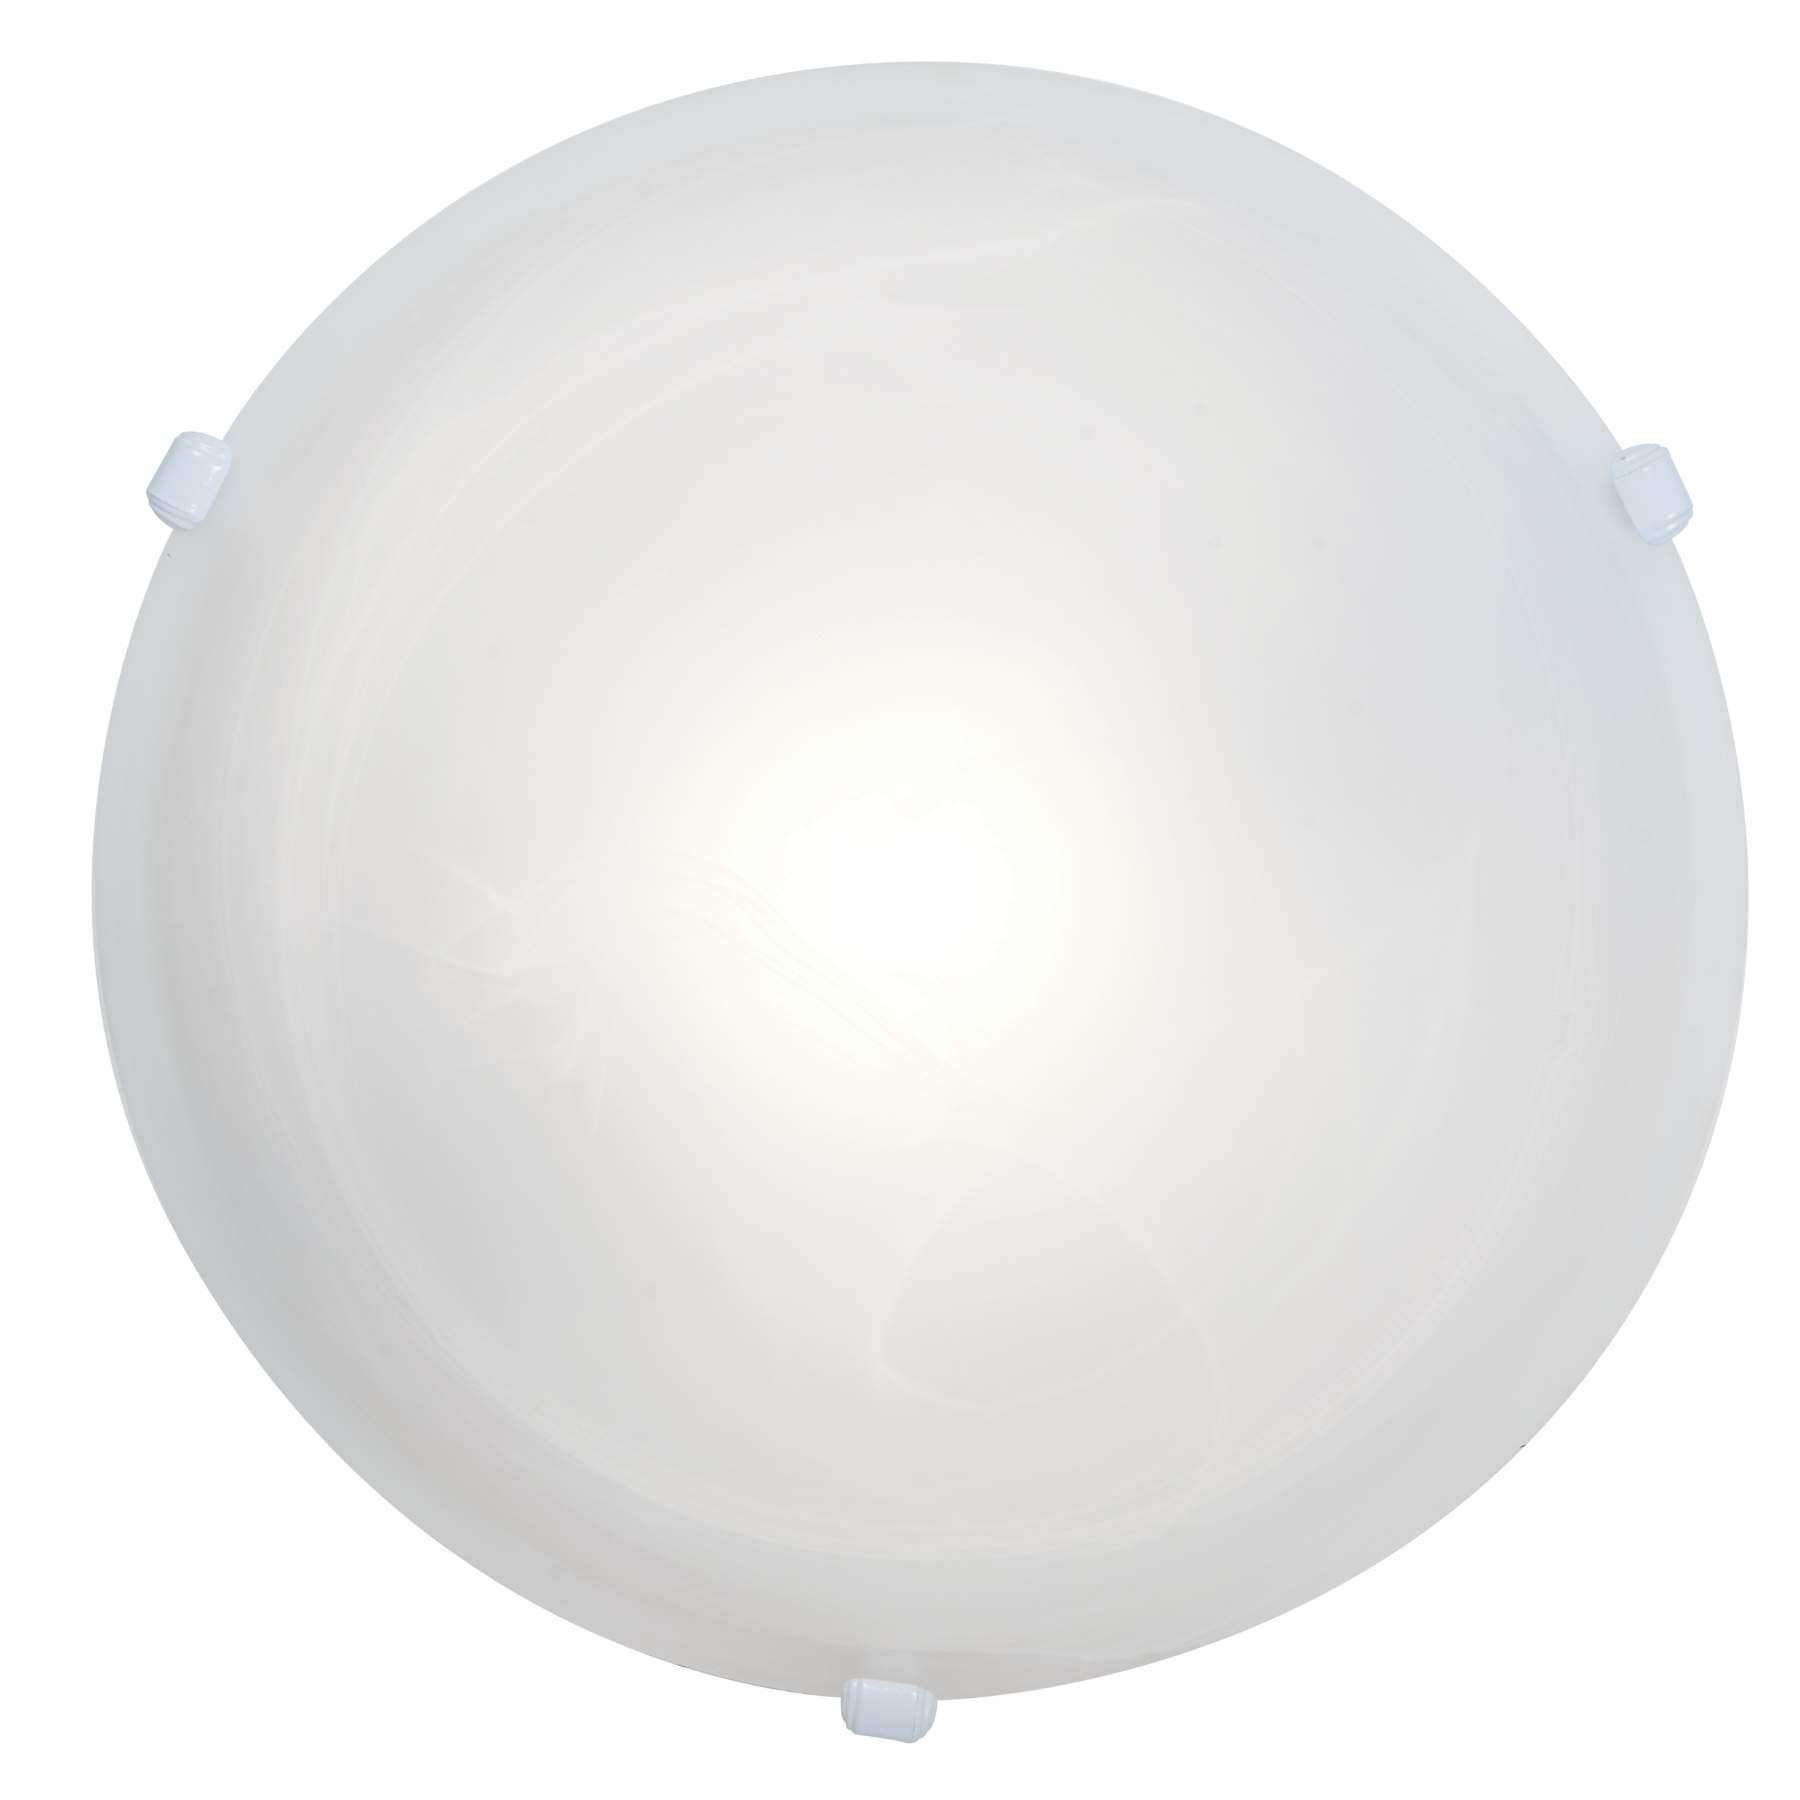 Access Lighting 50050-WH/ALB Nimbus Flush-Mount in White finish with Alabaster glass